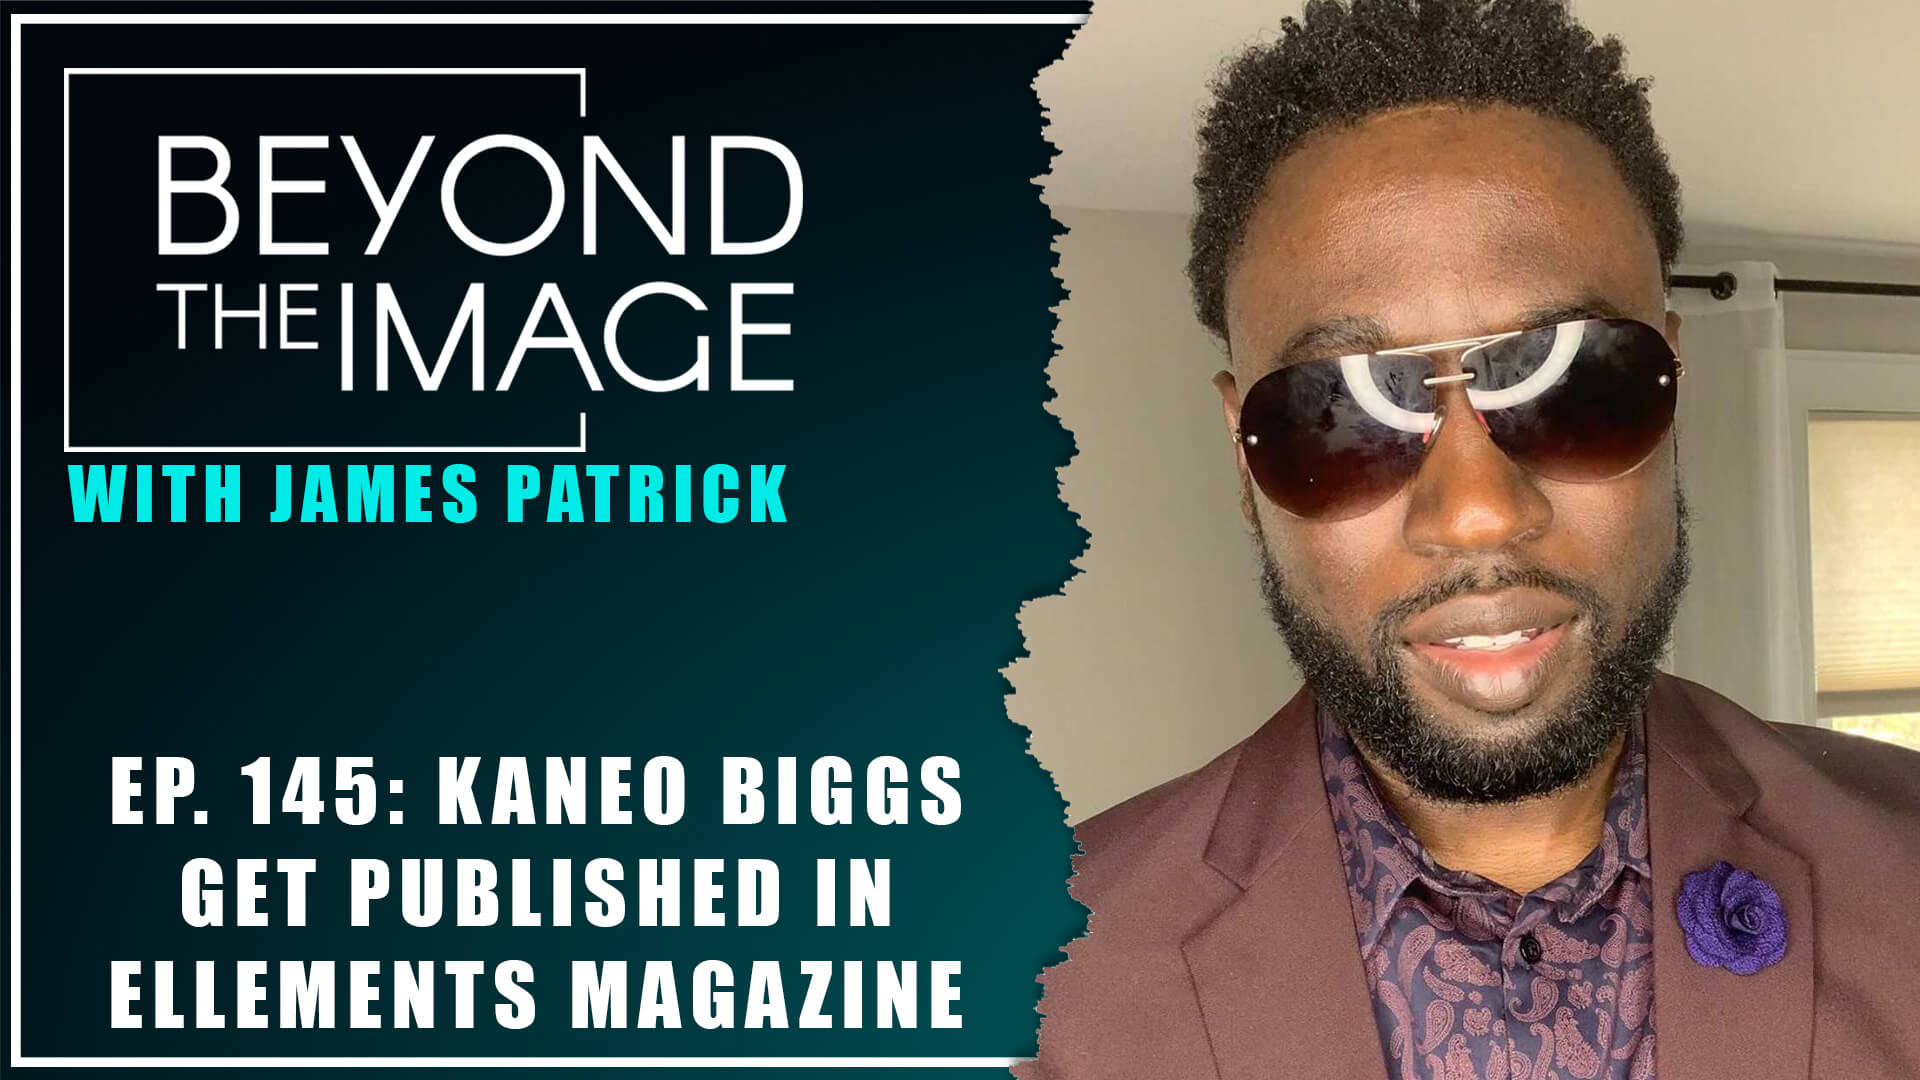 BTI #145: Get Published in Ellements Magazine with Kaneo Biggs